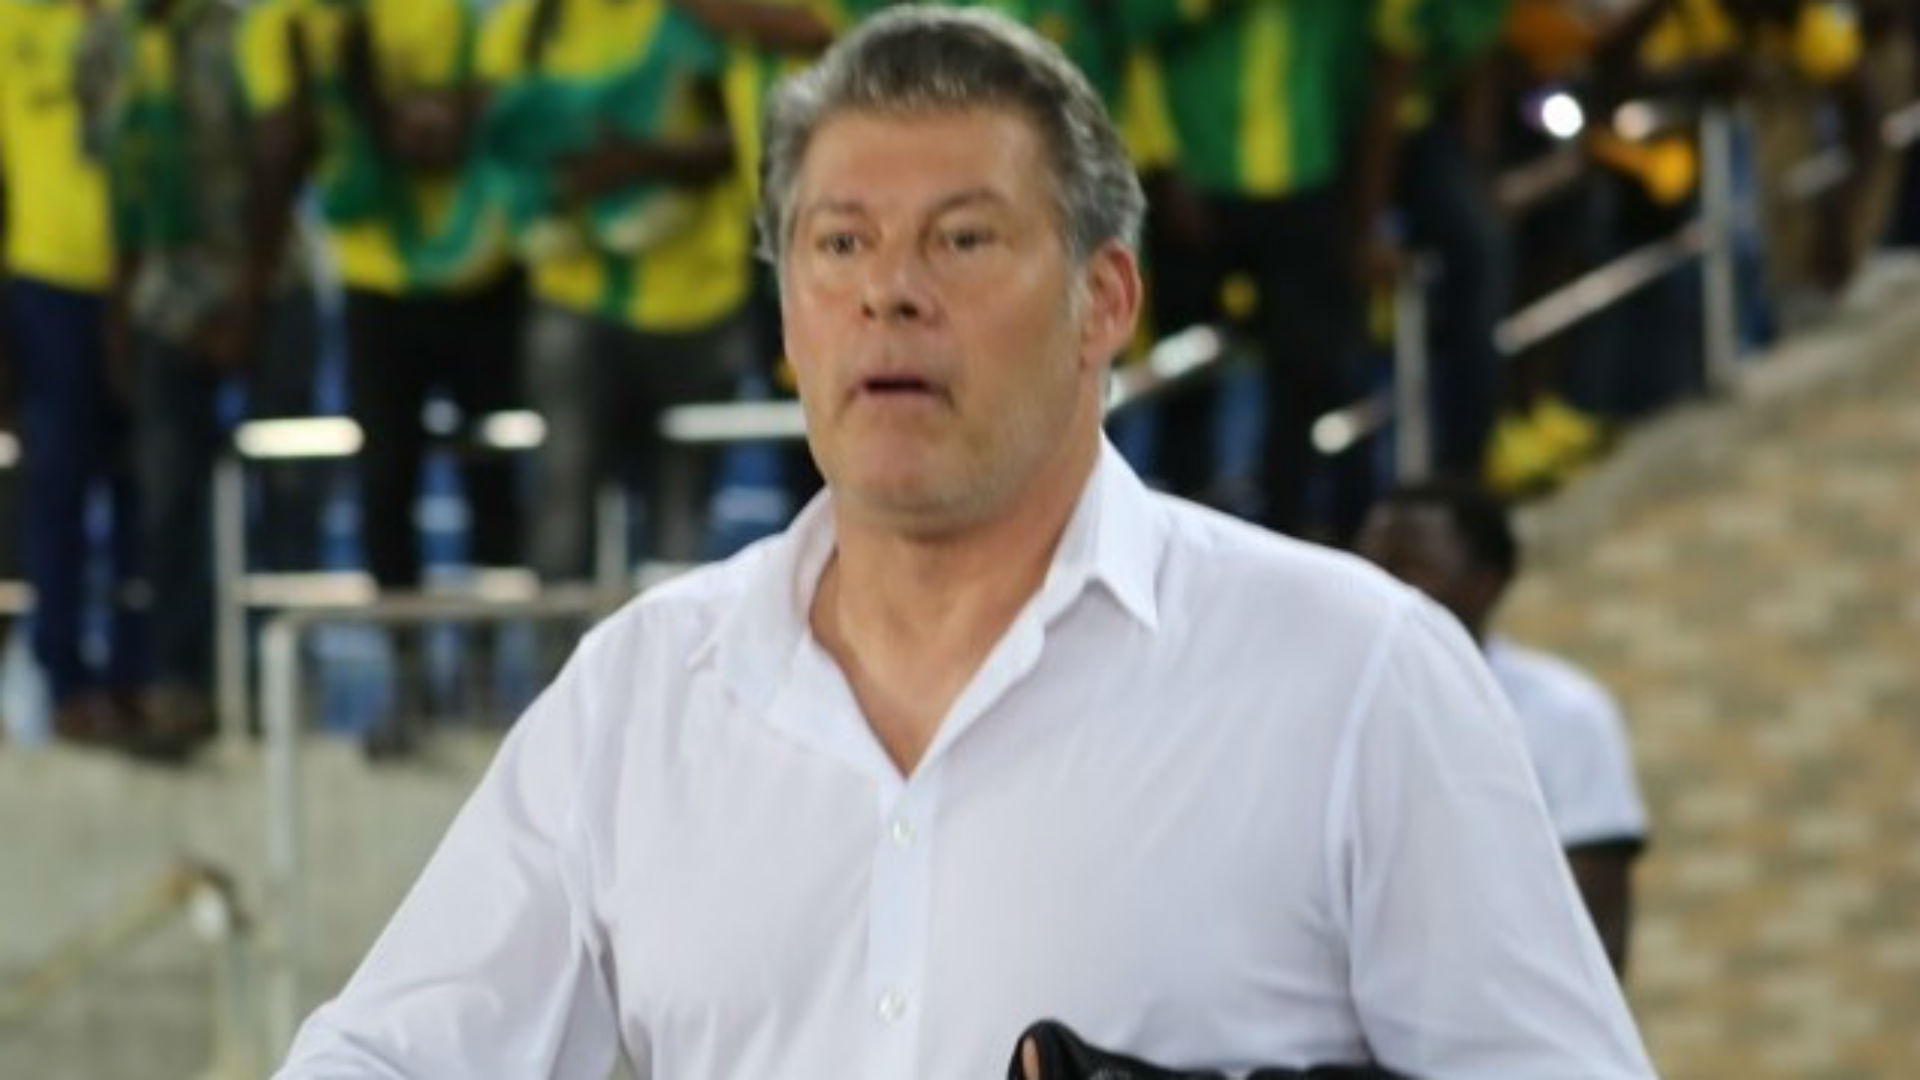 Hands off my coach - Chippa United owner Mpengesi tells Safa, as Eymael's lawyer also joins fight